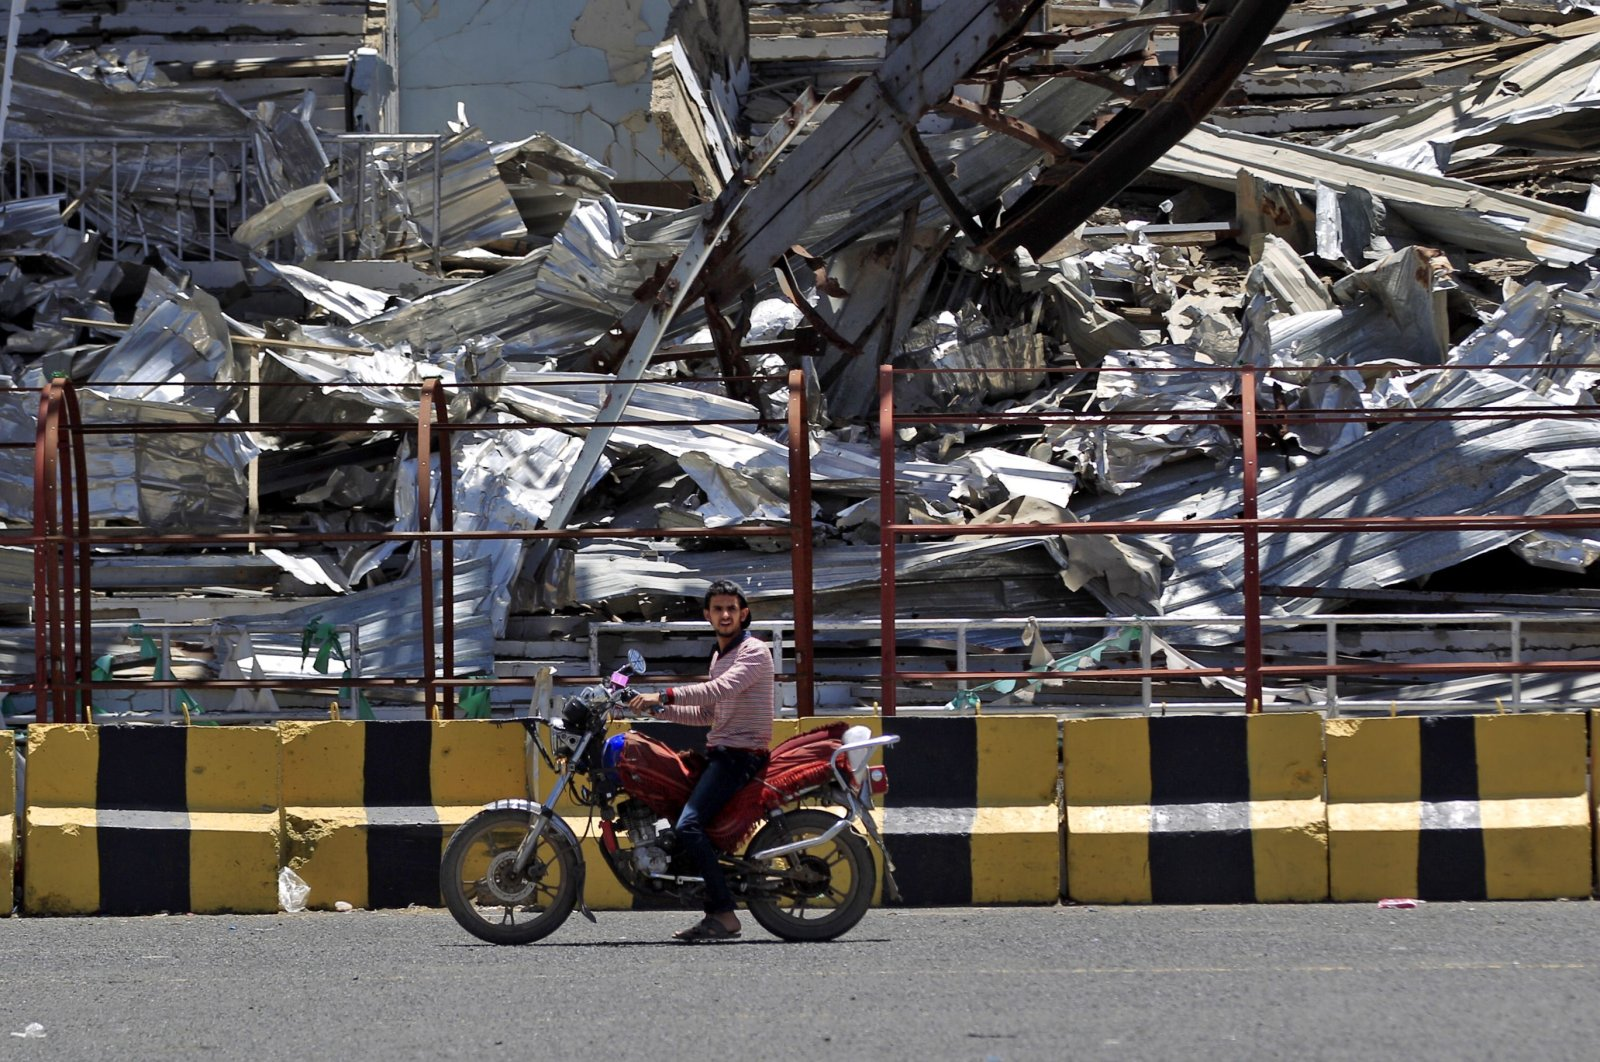 A man drives his motorcycle past a popular public square, which was destroyed in late 2017 in an airstrike by the Saudi-led coalition, Sanaa, Yemen, April 9, 2020. (AFP Photo)